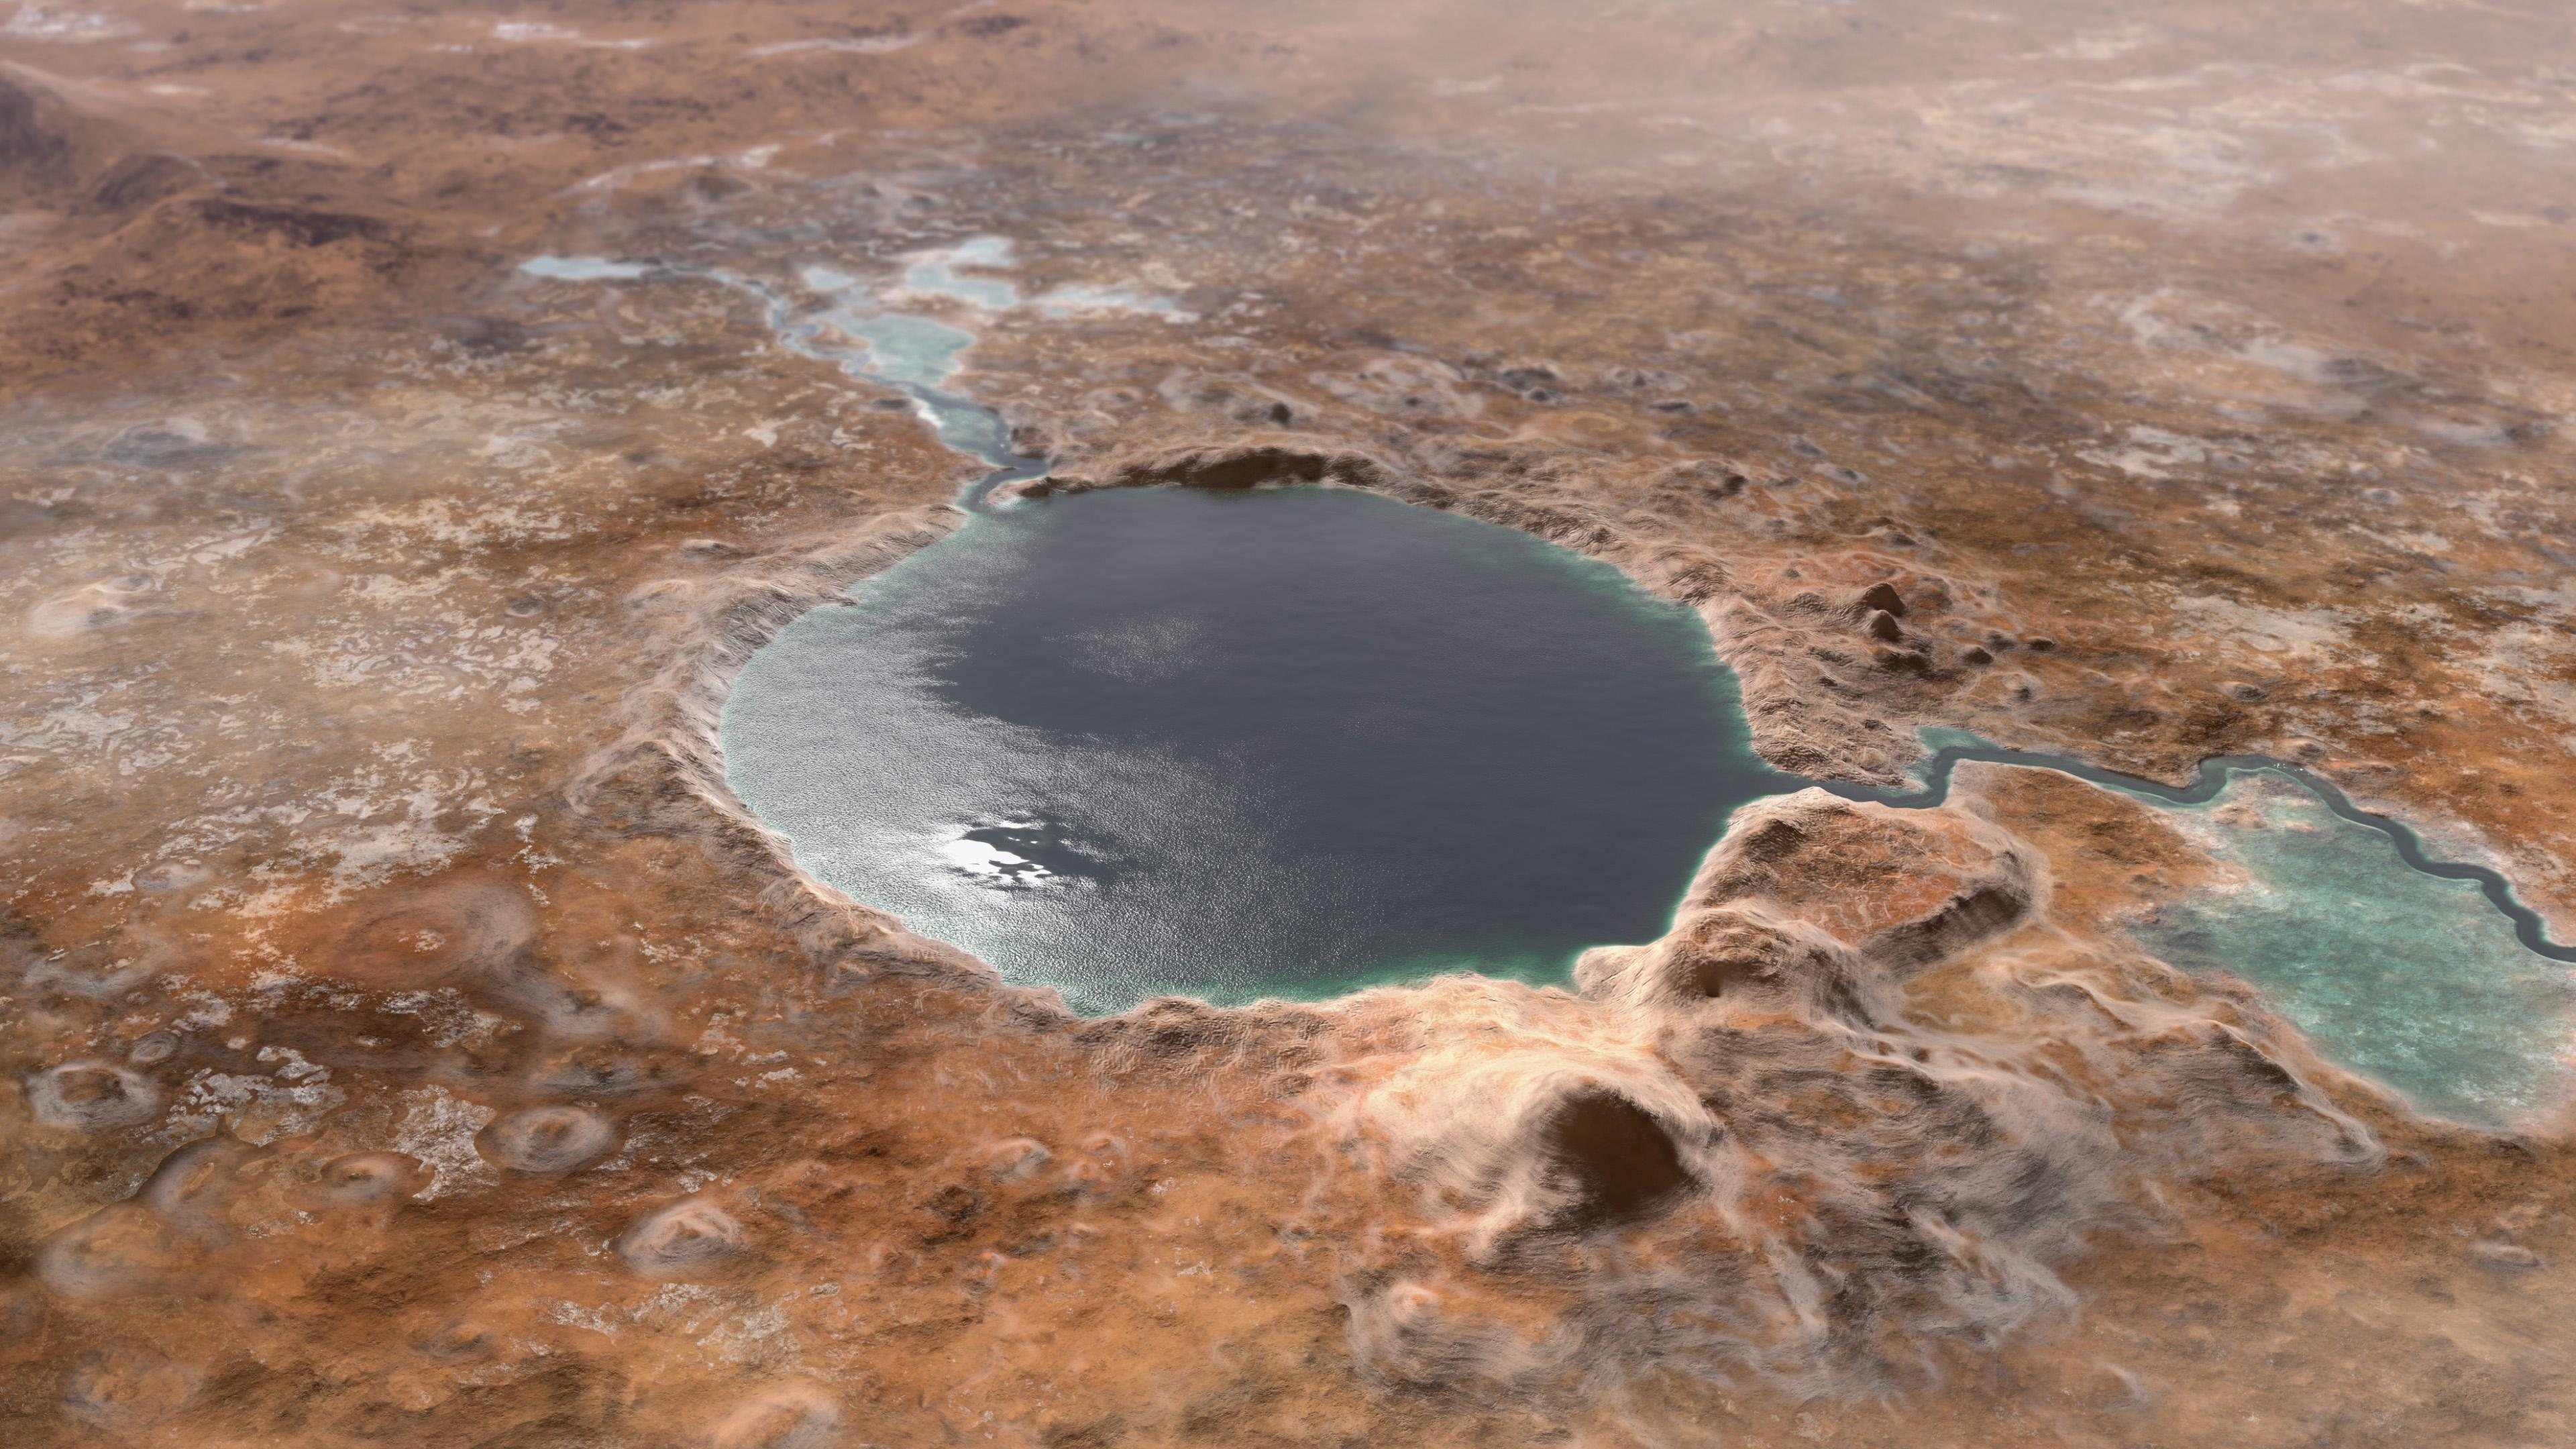 Jezero Crater Was a Lake in Mars' Ancient Past